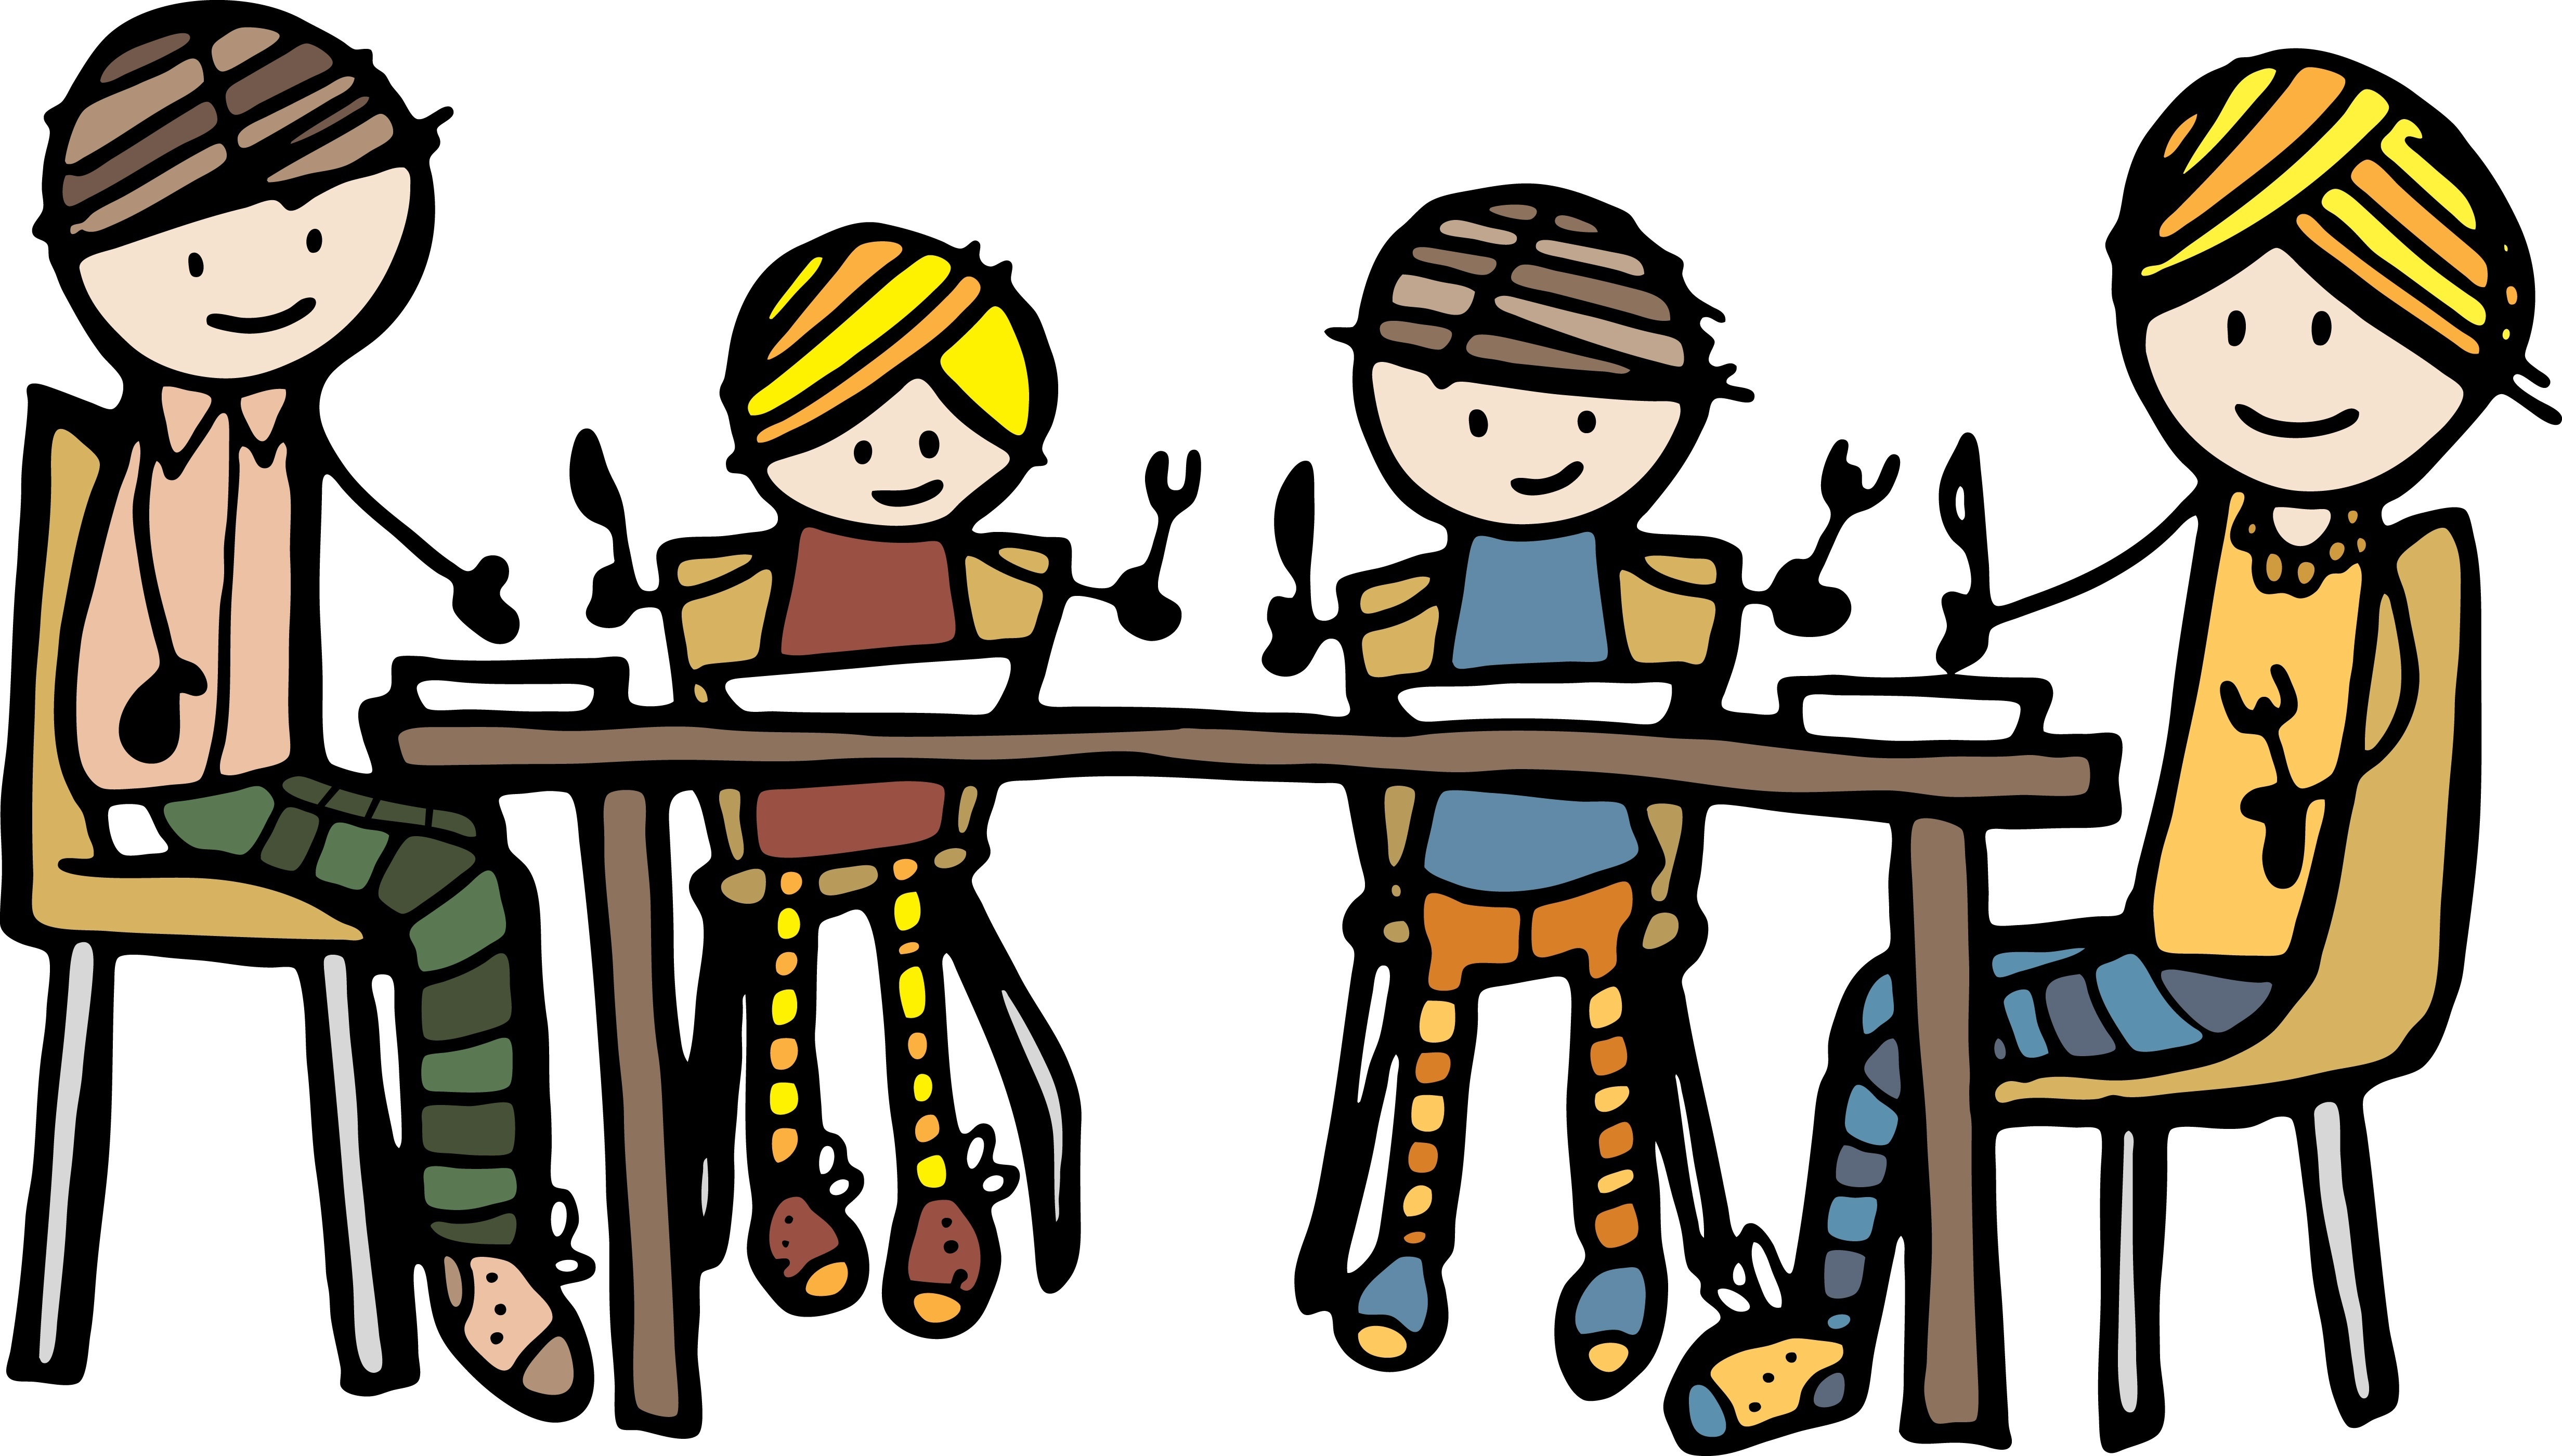 Family at table clipart vector black and white library Family Dinner At Table clipart free image vector black and white library